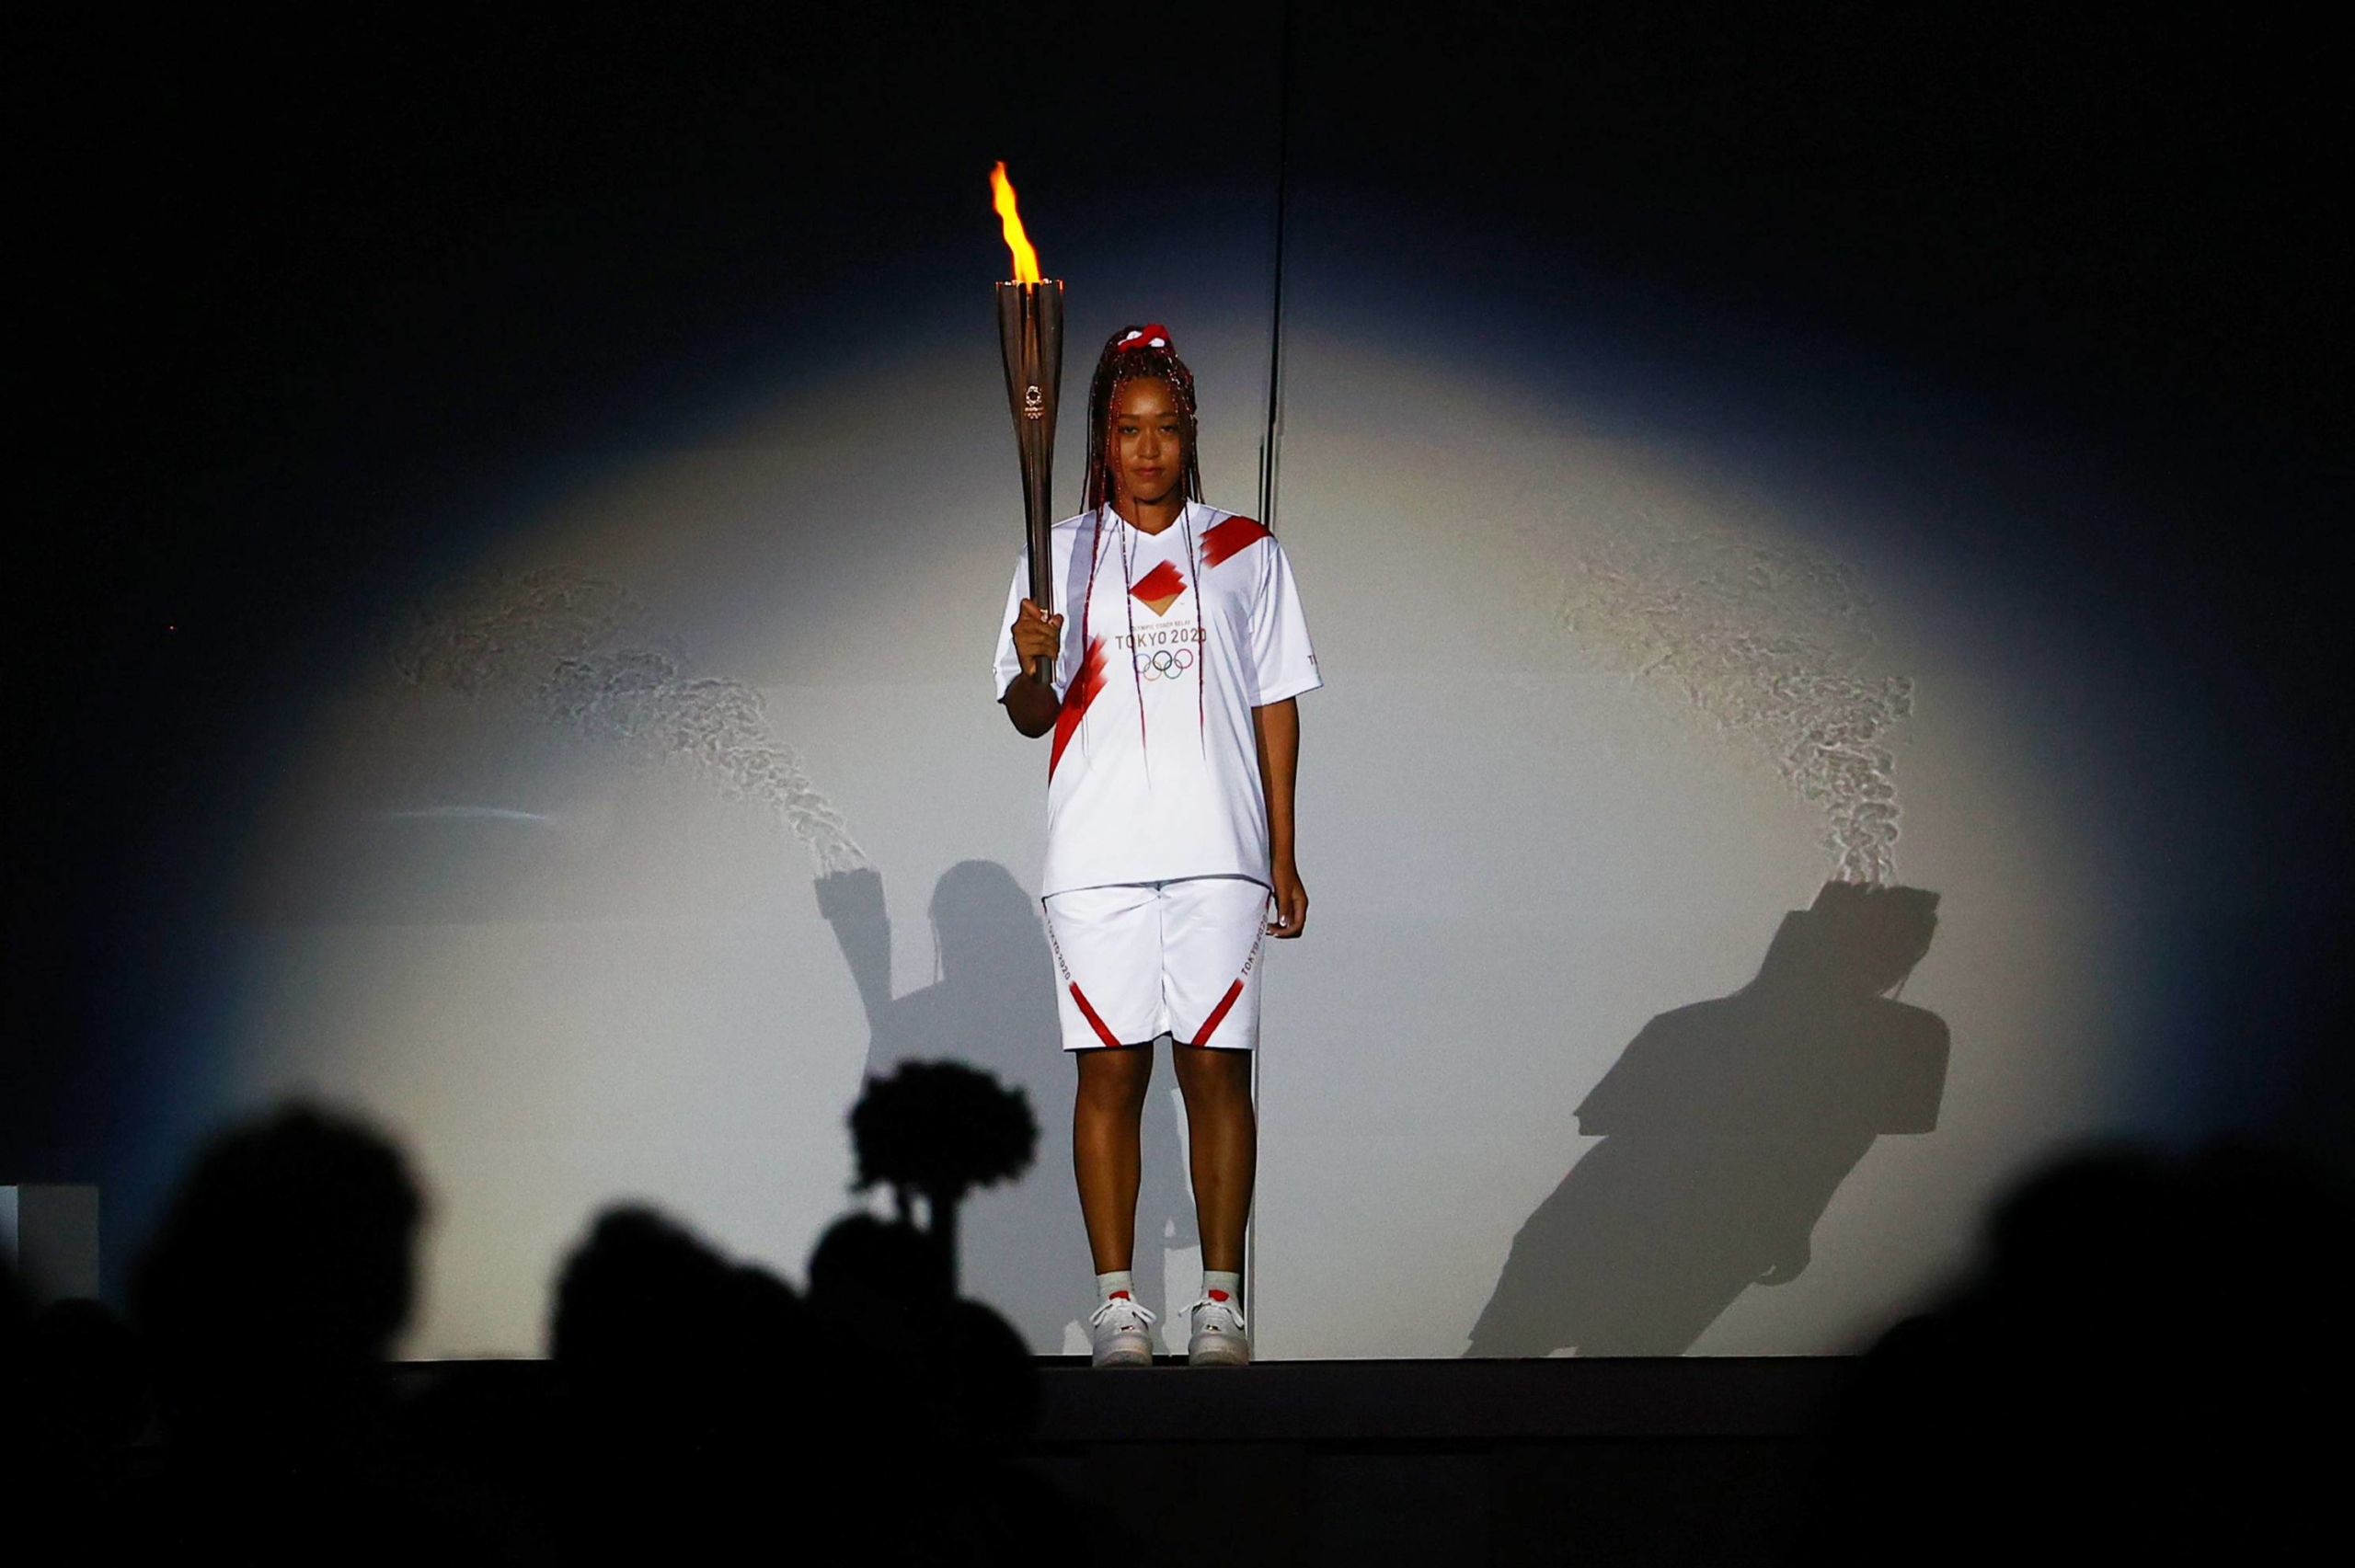 'Undoubtedly the greatest athletic achievement and honor I will ever have in my life,' Naomi Osaka said in a tweet after lighting the Olympic cauldron at the opening ceremony of the Tokyo Games.  | REUTERS